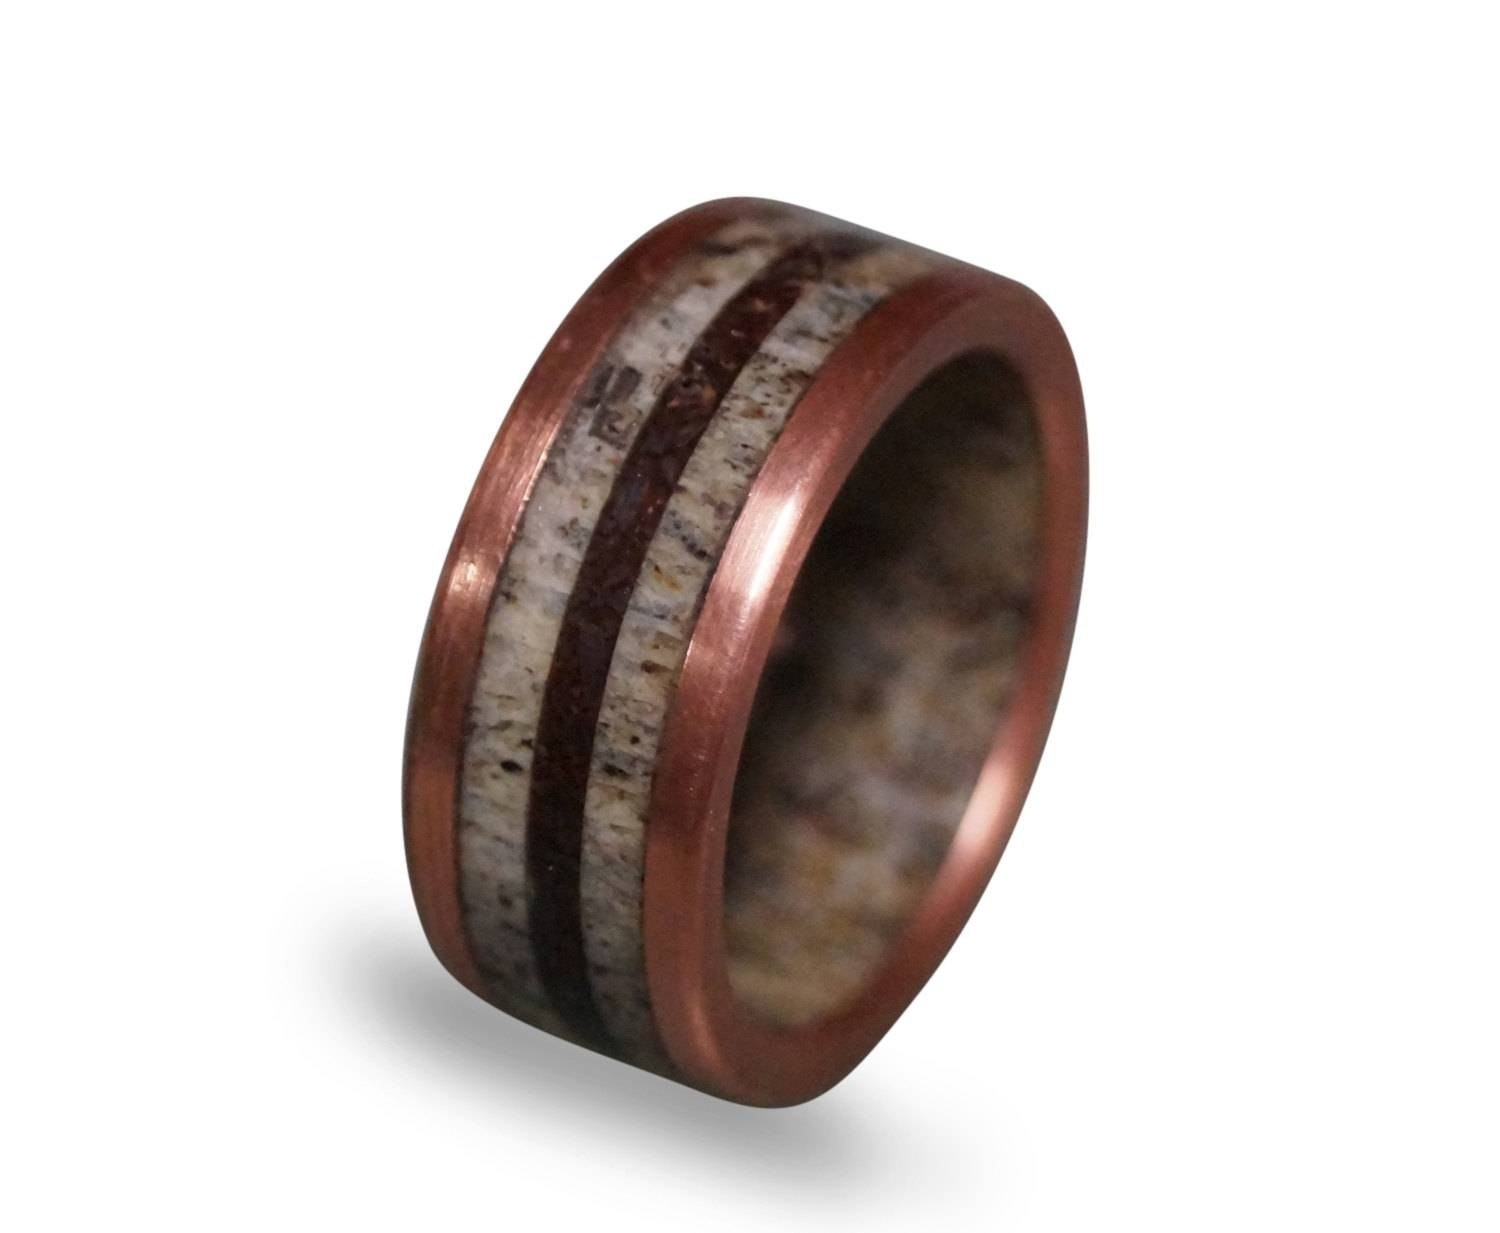 Deer Antler Ring With Patina Copper And Dinosaur Fossil Inlays Throughout Mens Wedding Bands With Deer Antlers (View 5 of 15)